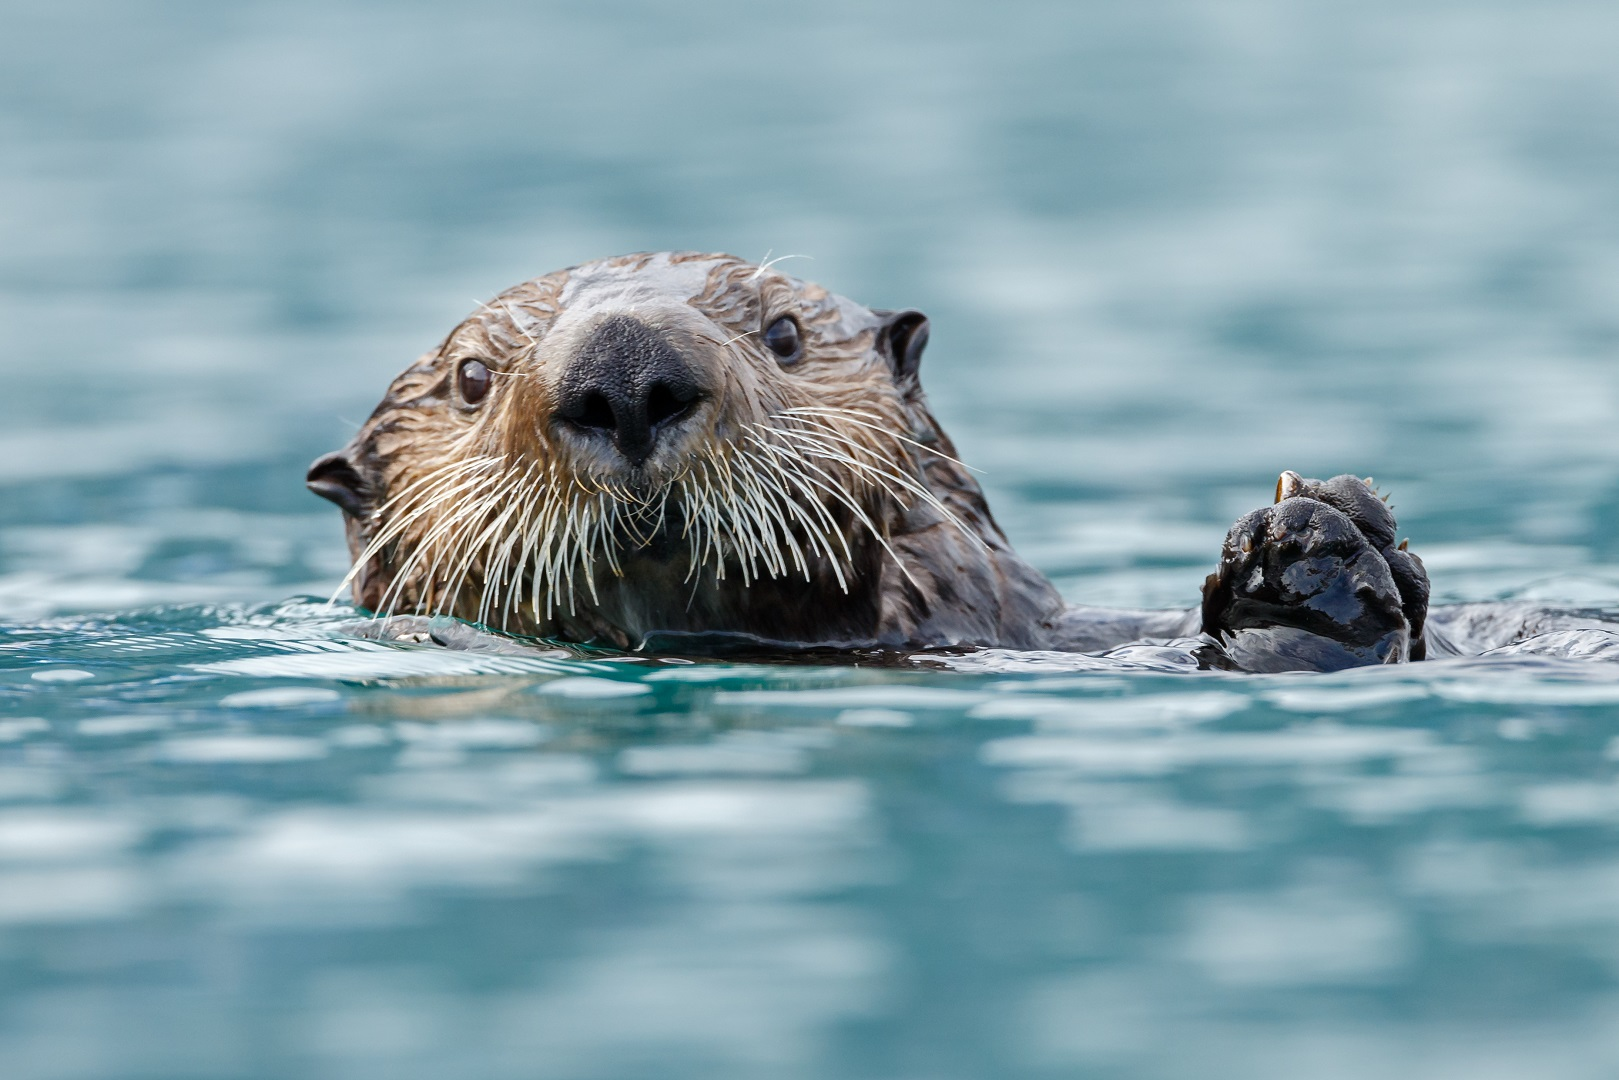 California Aquarium Apologizes After Calling Their Sea Otter 'Thicc' on Instagram